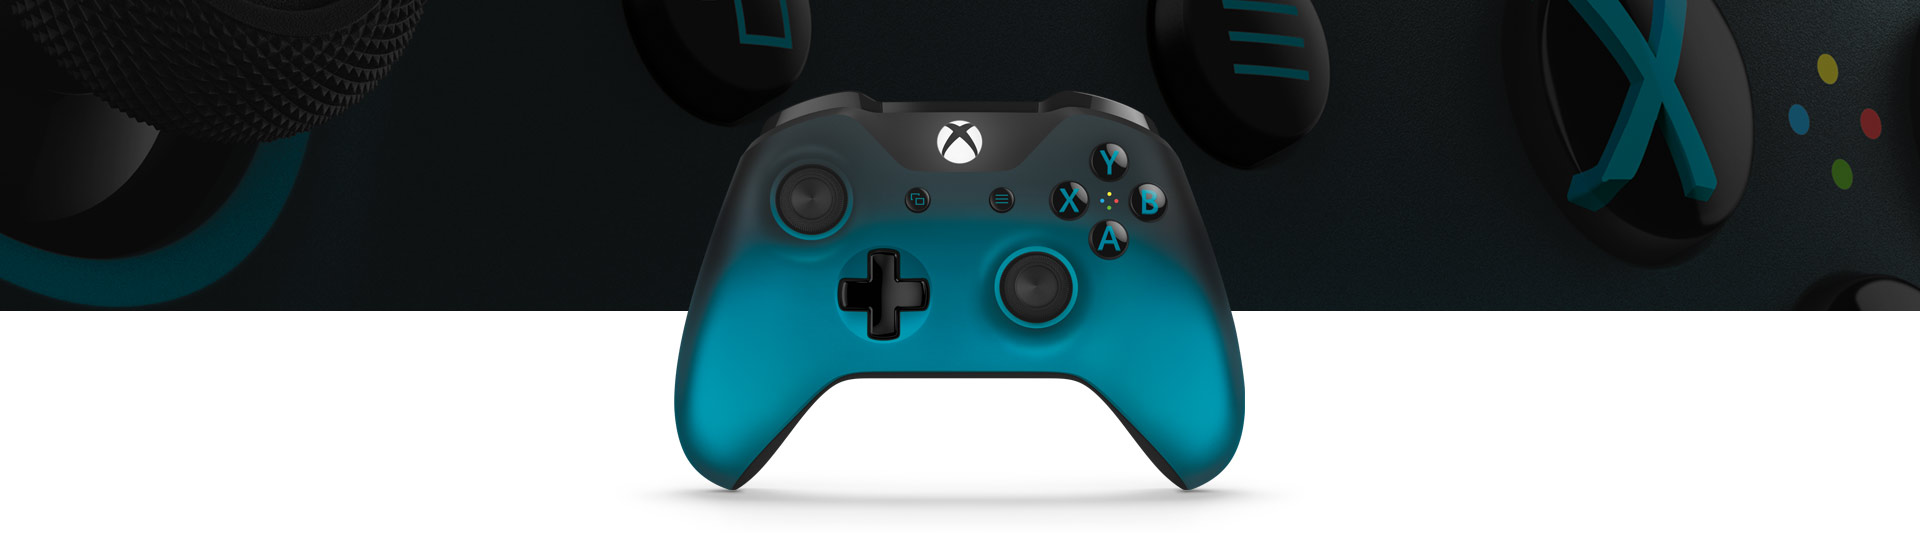 hight resolution of xbox wireless controller ocean shadow special edition